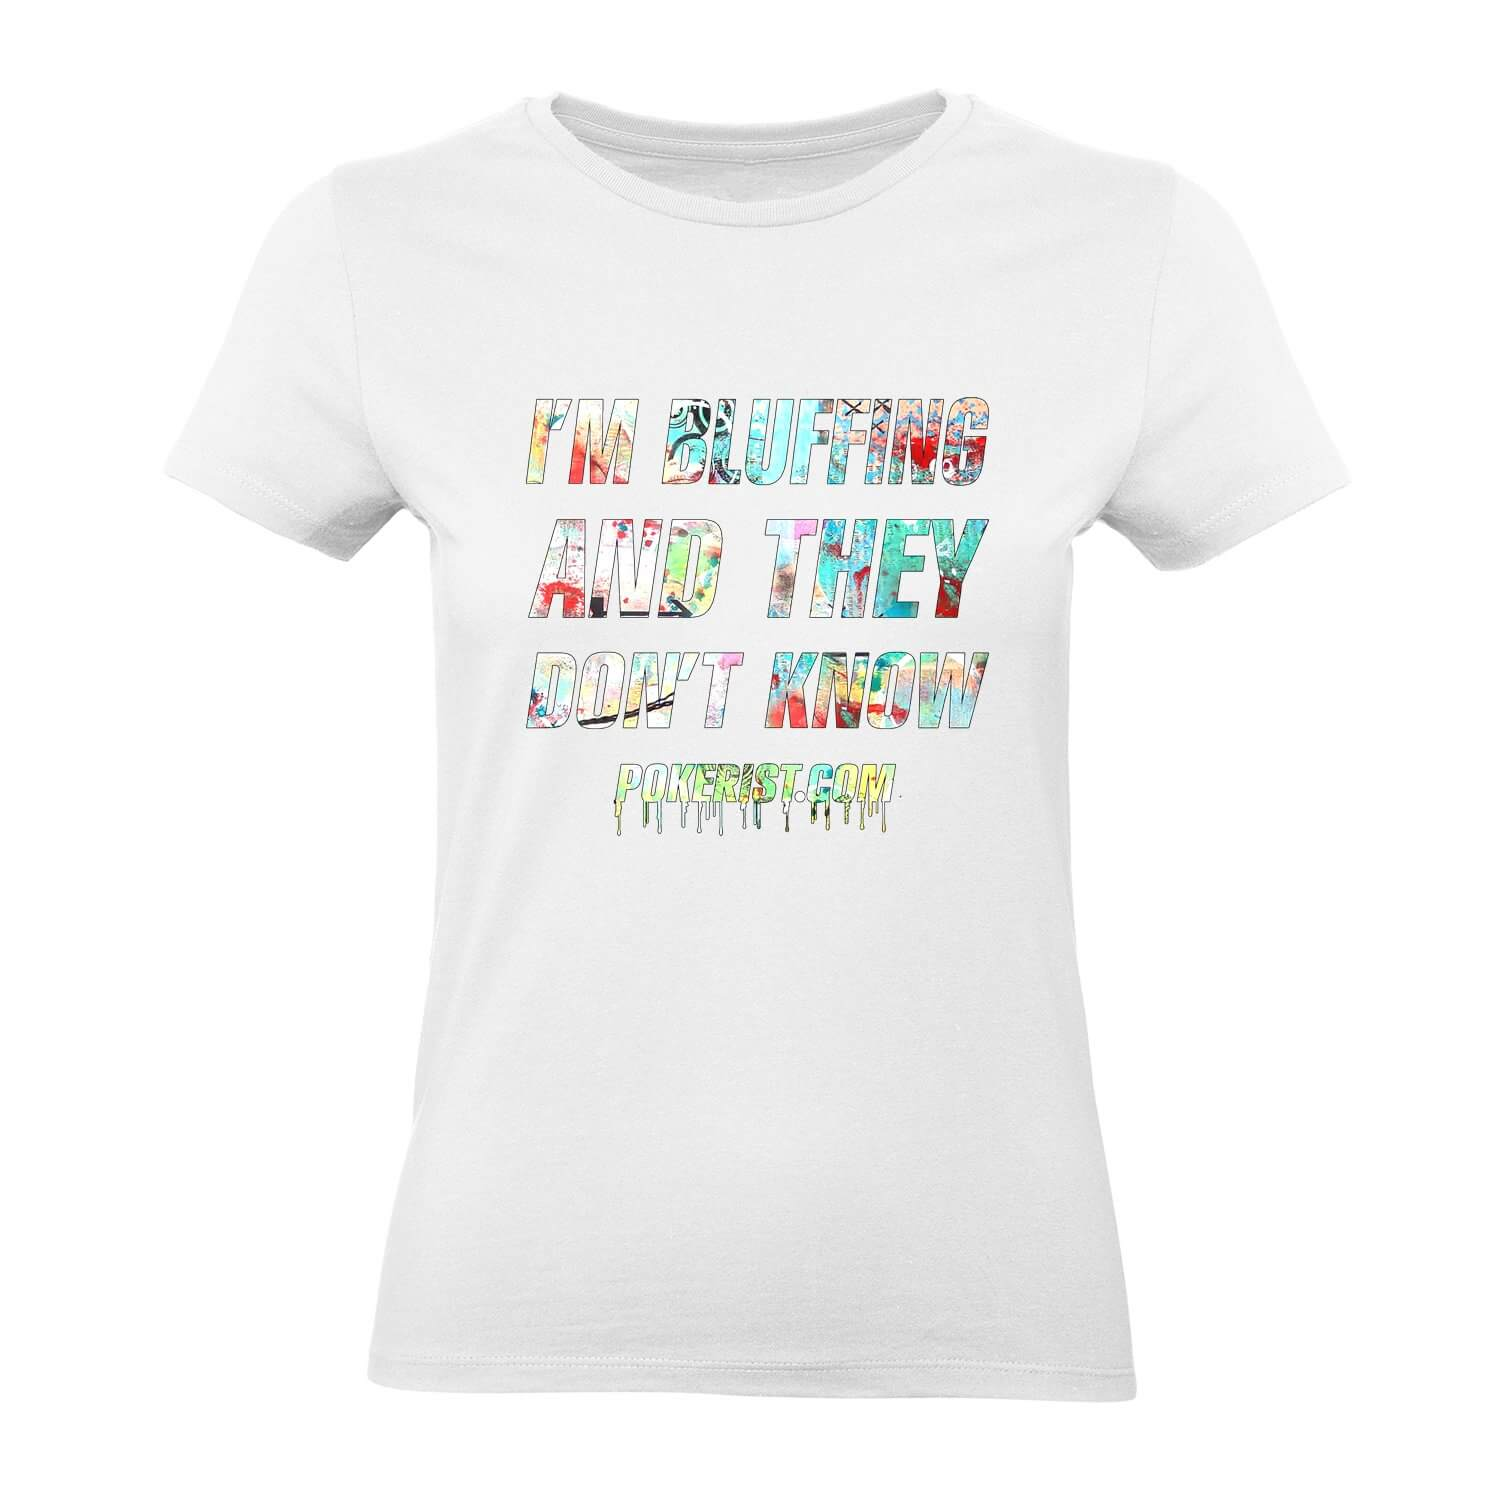 I'm Bluffing Graffiti Womens Tee